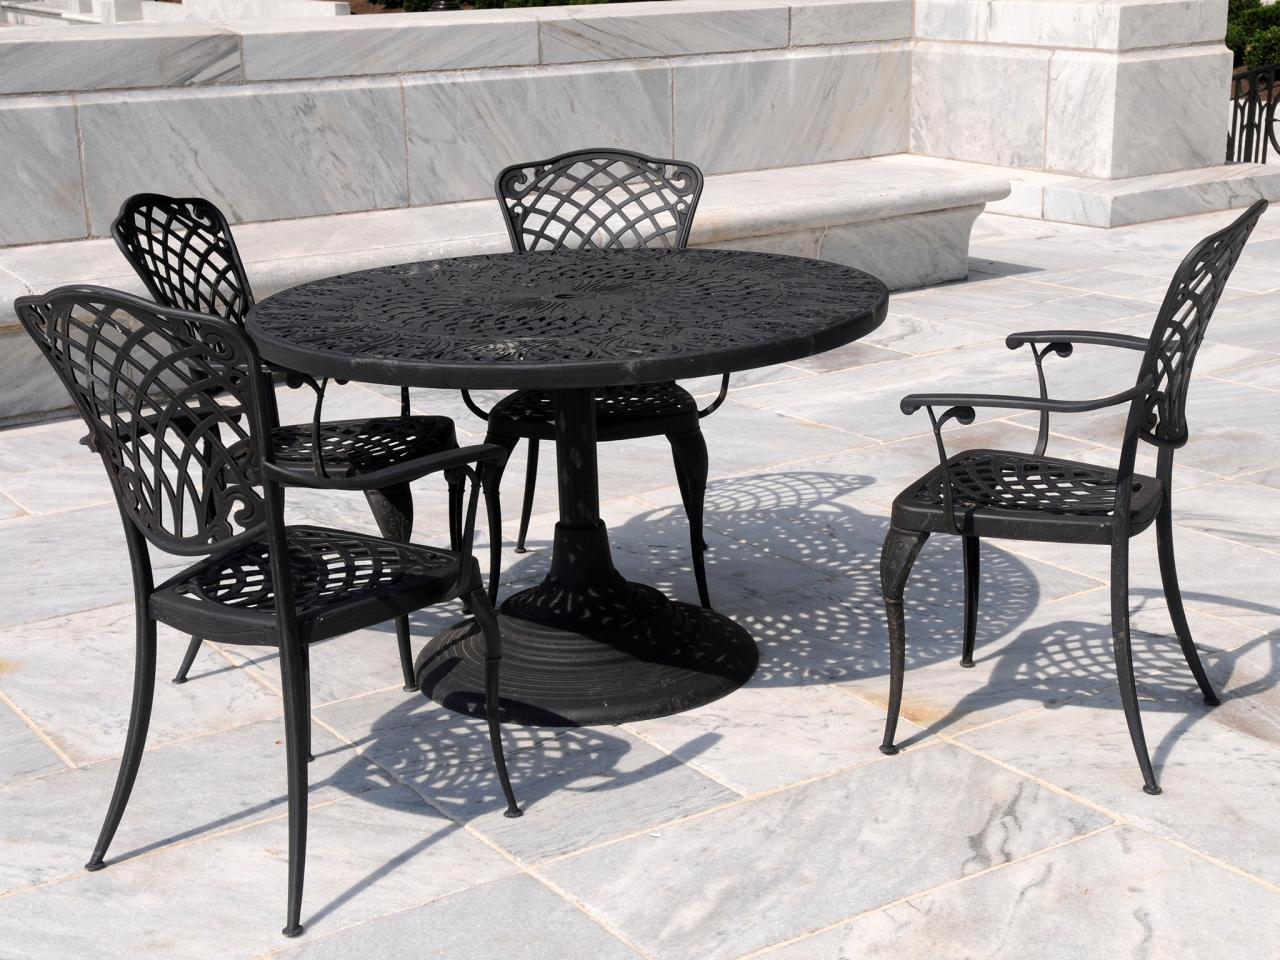 Chic Wrought Iron Patio Furniture wrought iron patio table